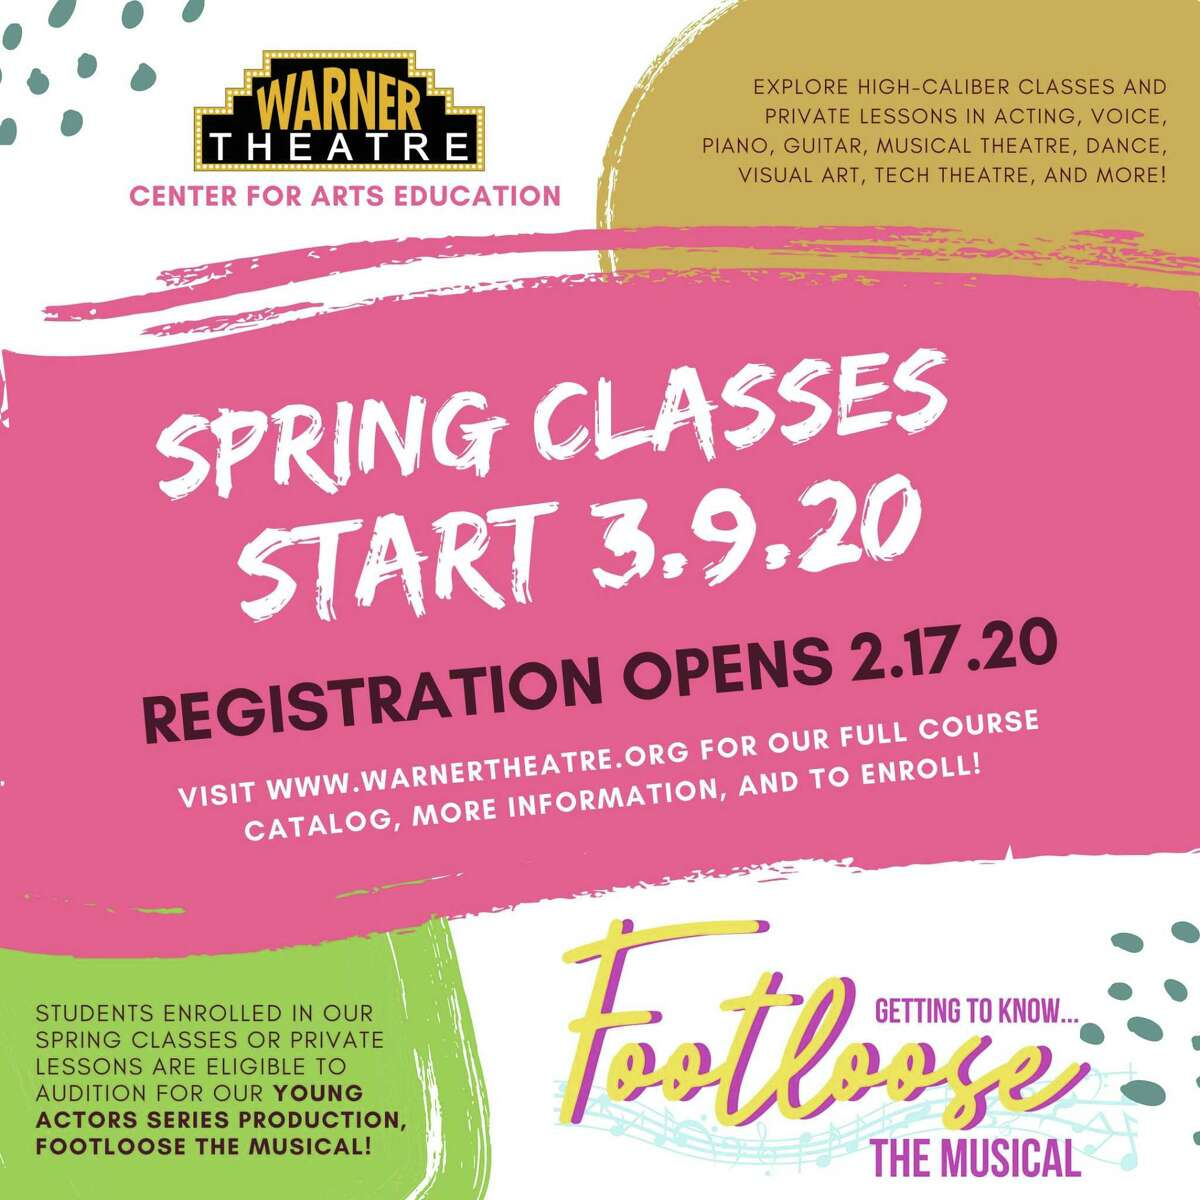 Spring arts classes begin March 9 at the Warner Theatre Center for Arts Education.